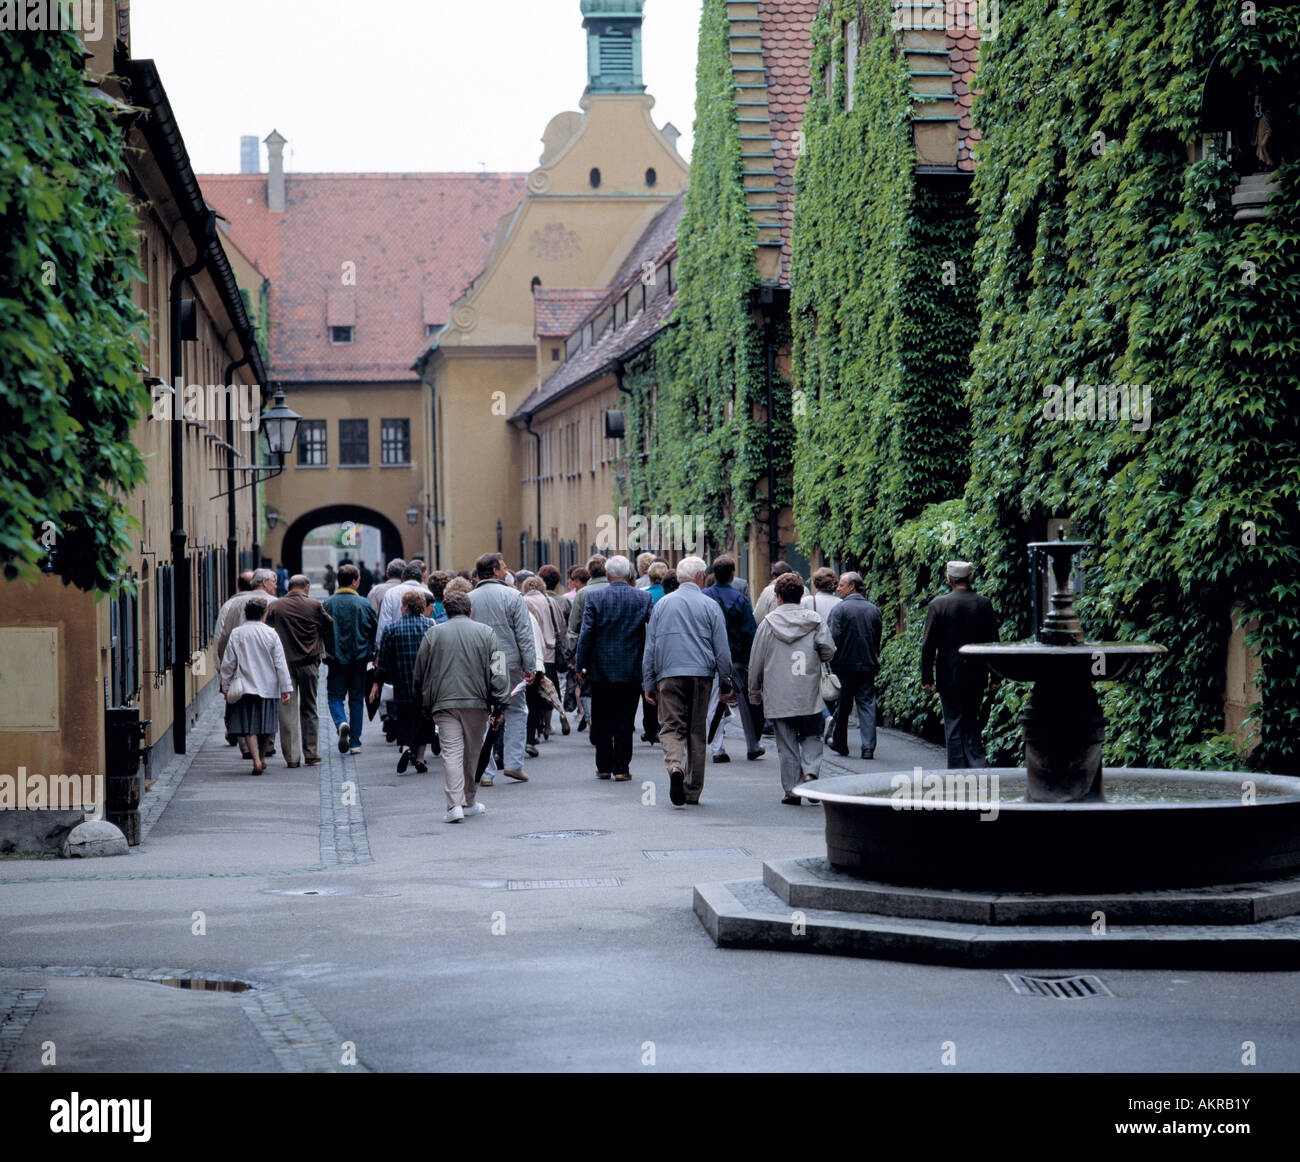 D-Augsburg, Lech, Swabia, Bavaria, Fuggerei, the Worlds oldest suburban colony founded in 1516 by Jacob Fugger The Stock Photo